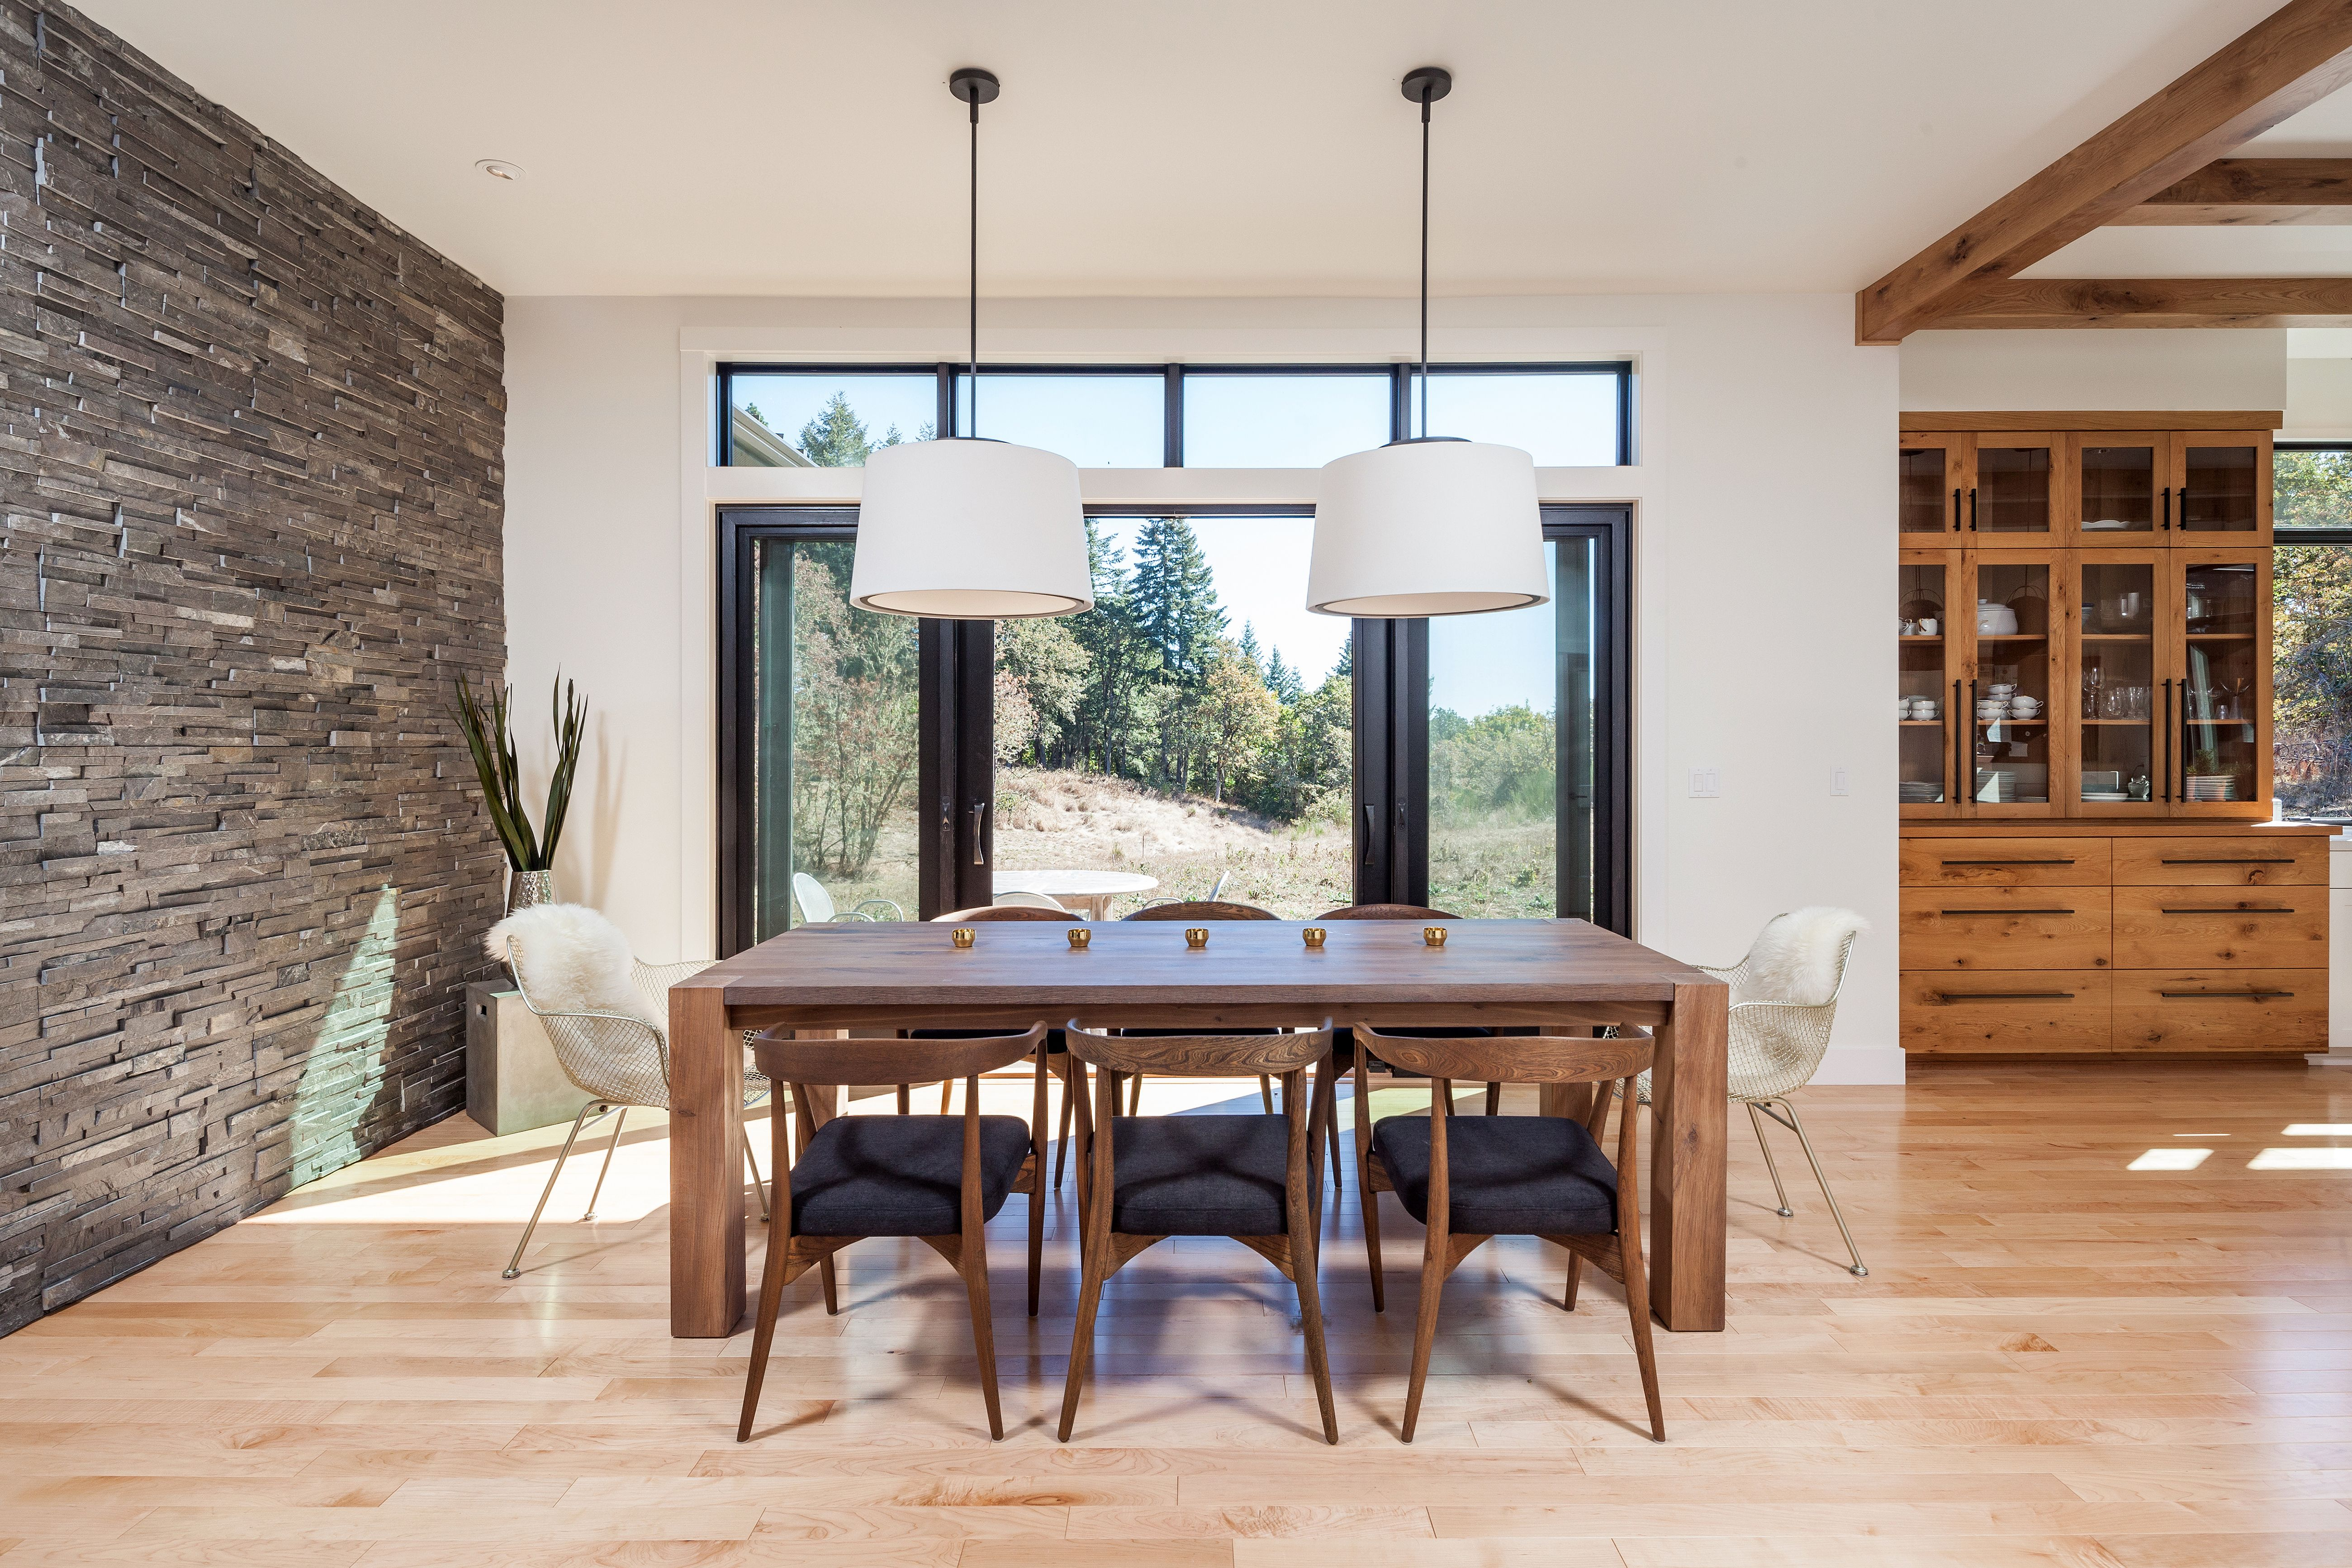 home design eugene oregon custom design build home in eugene oregon by jordan iverson signature homes contemporary 7069